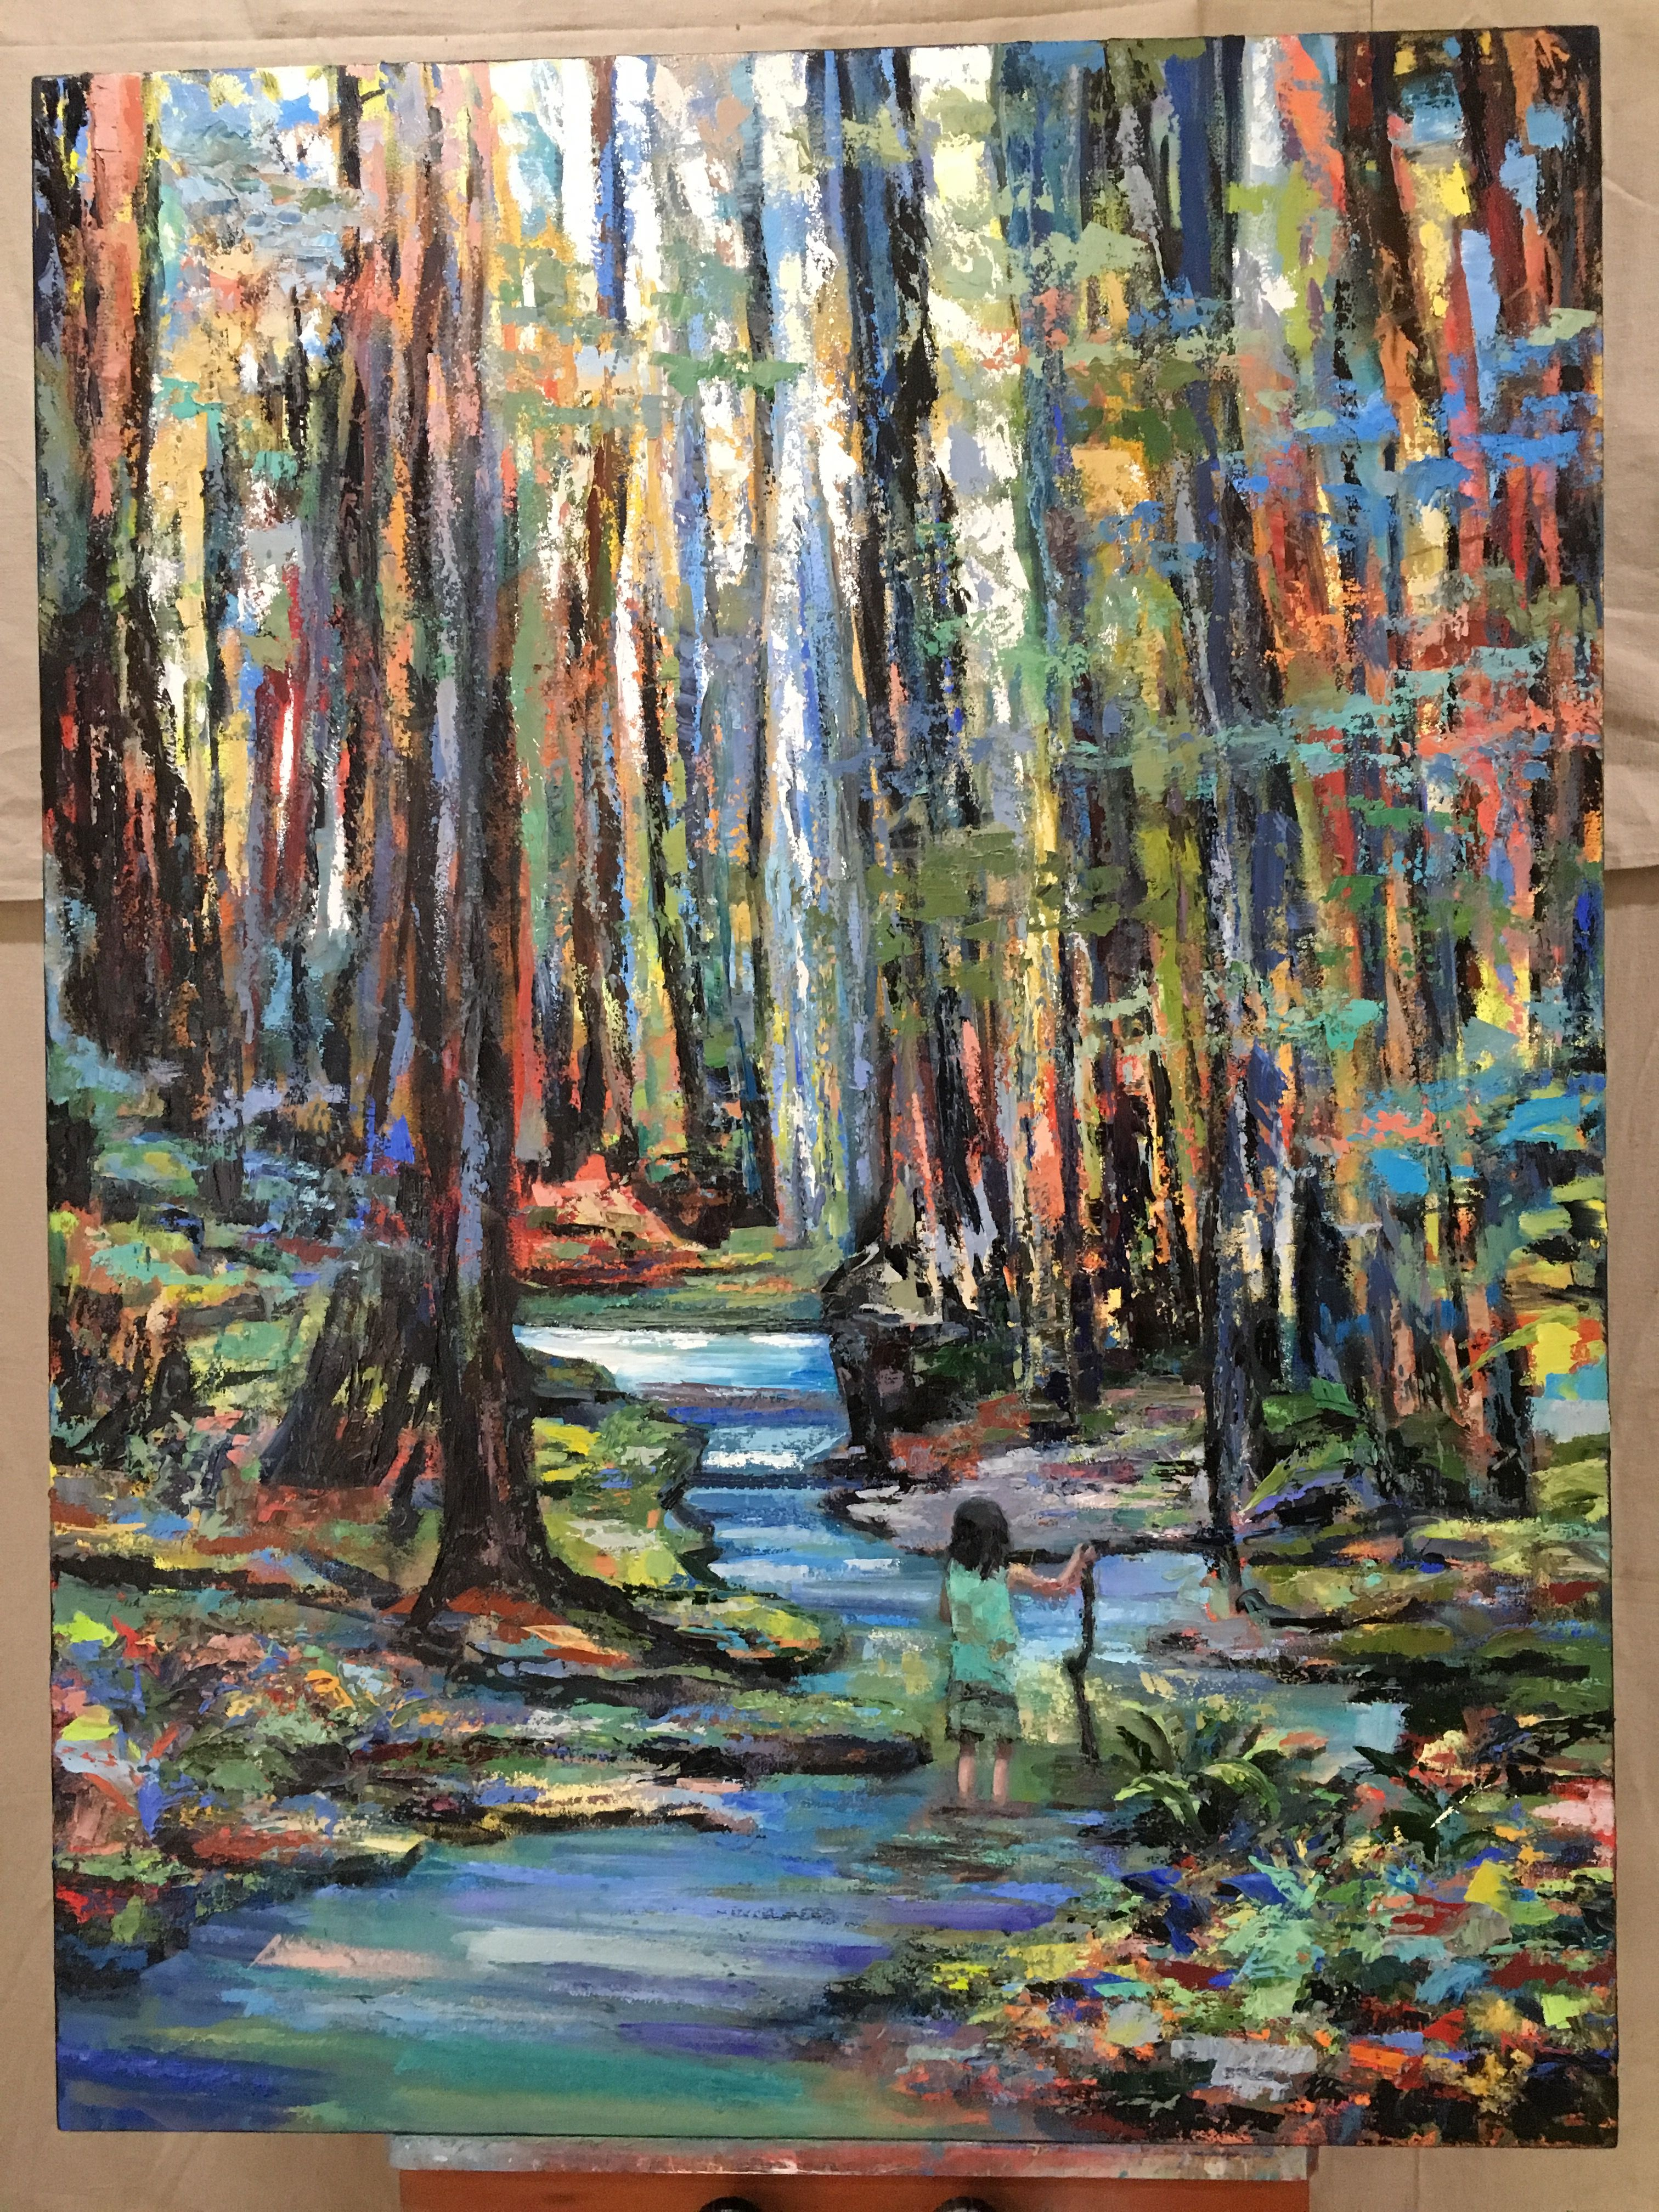 Phoebe In Muir Woods By Kim Ford Kitz Kimfordkitz Com With Images Landscape Paintings Painting Abstract Landscape